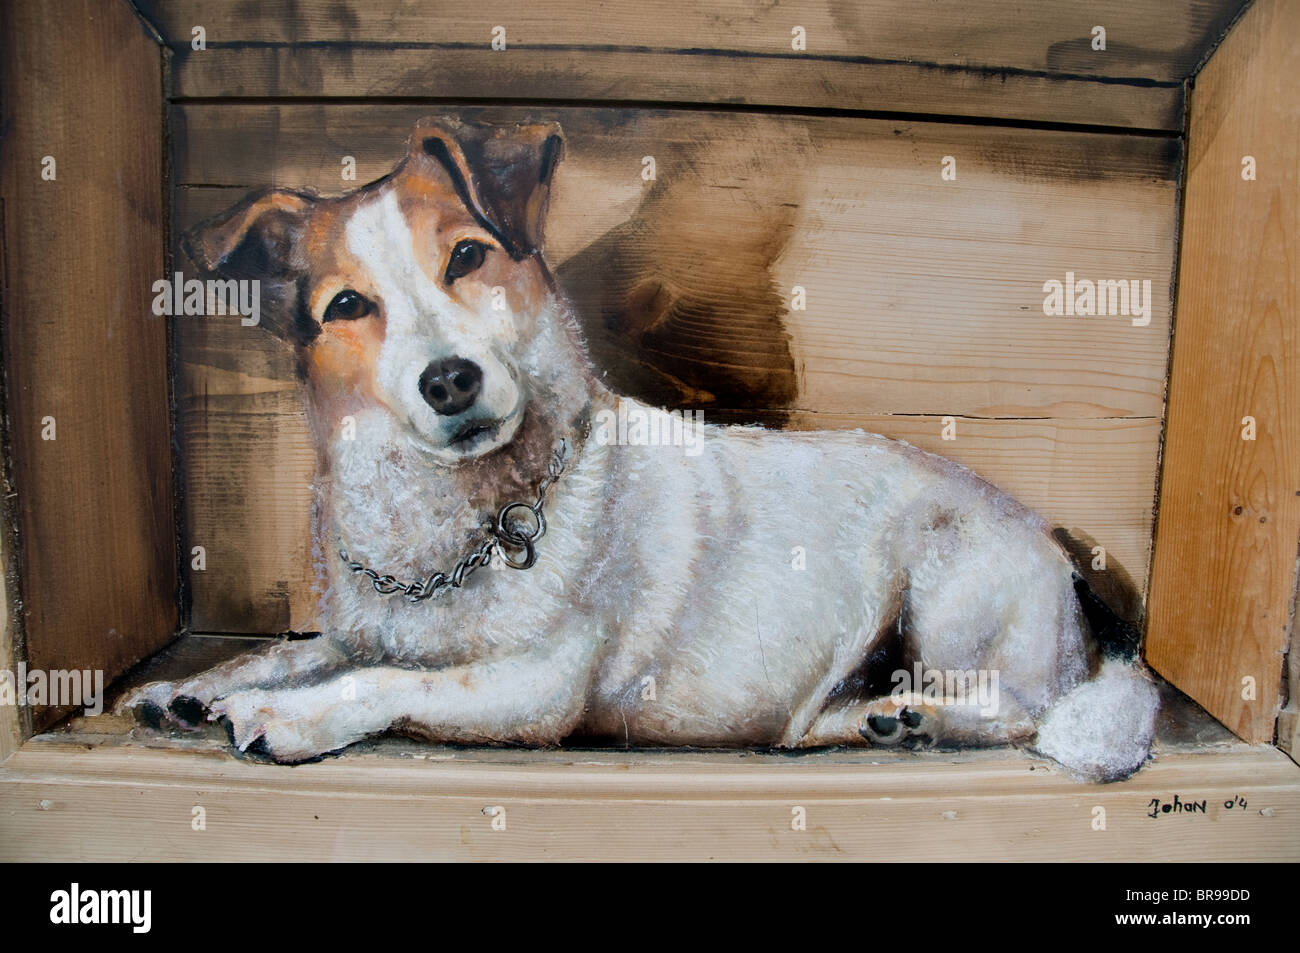 Netherlands Painting Little Small Dog Gallery Stock Photo Alamy